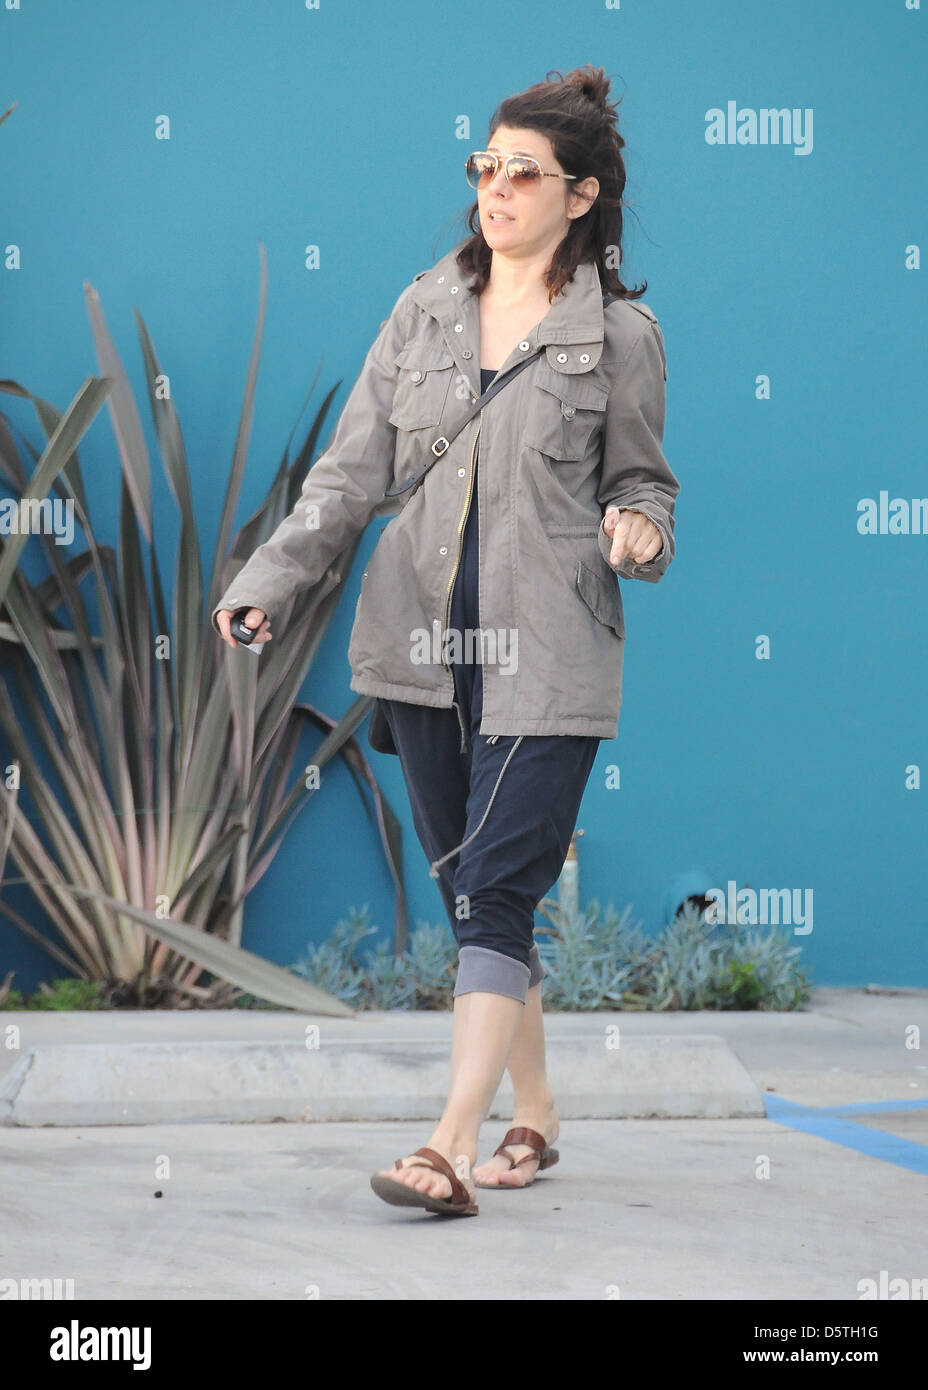 Marisa Tomei leaving Yoga class in West Hollywood Los Angeles, California - 13.03.12 Stock Photo